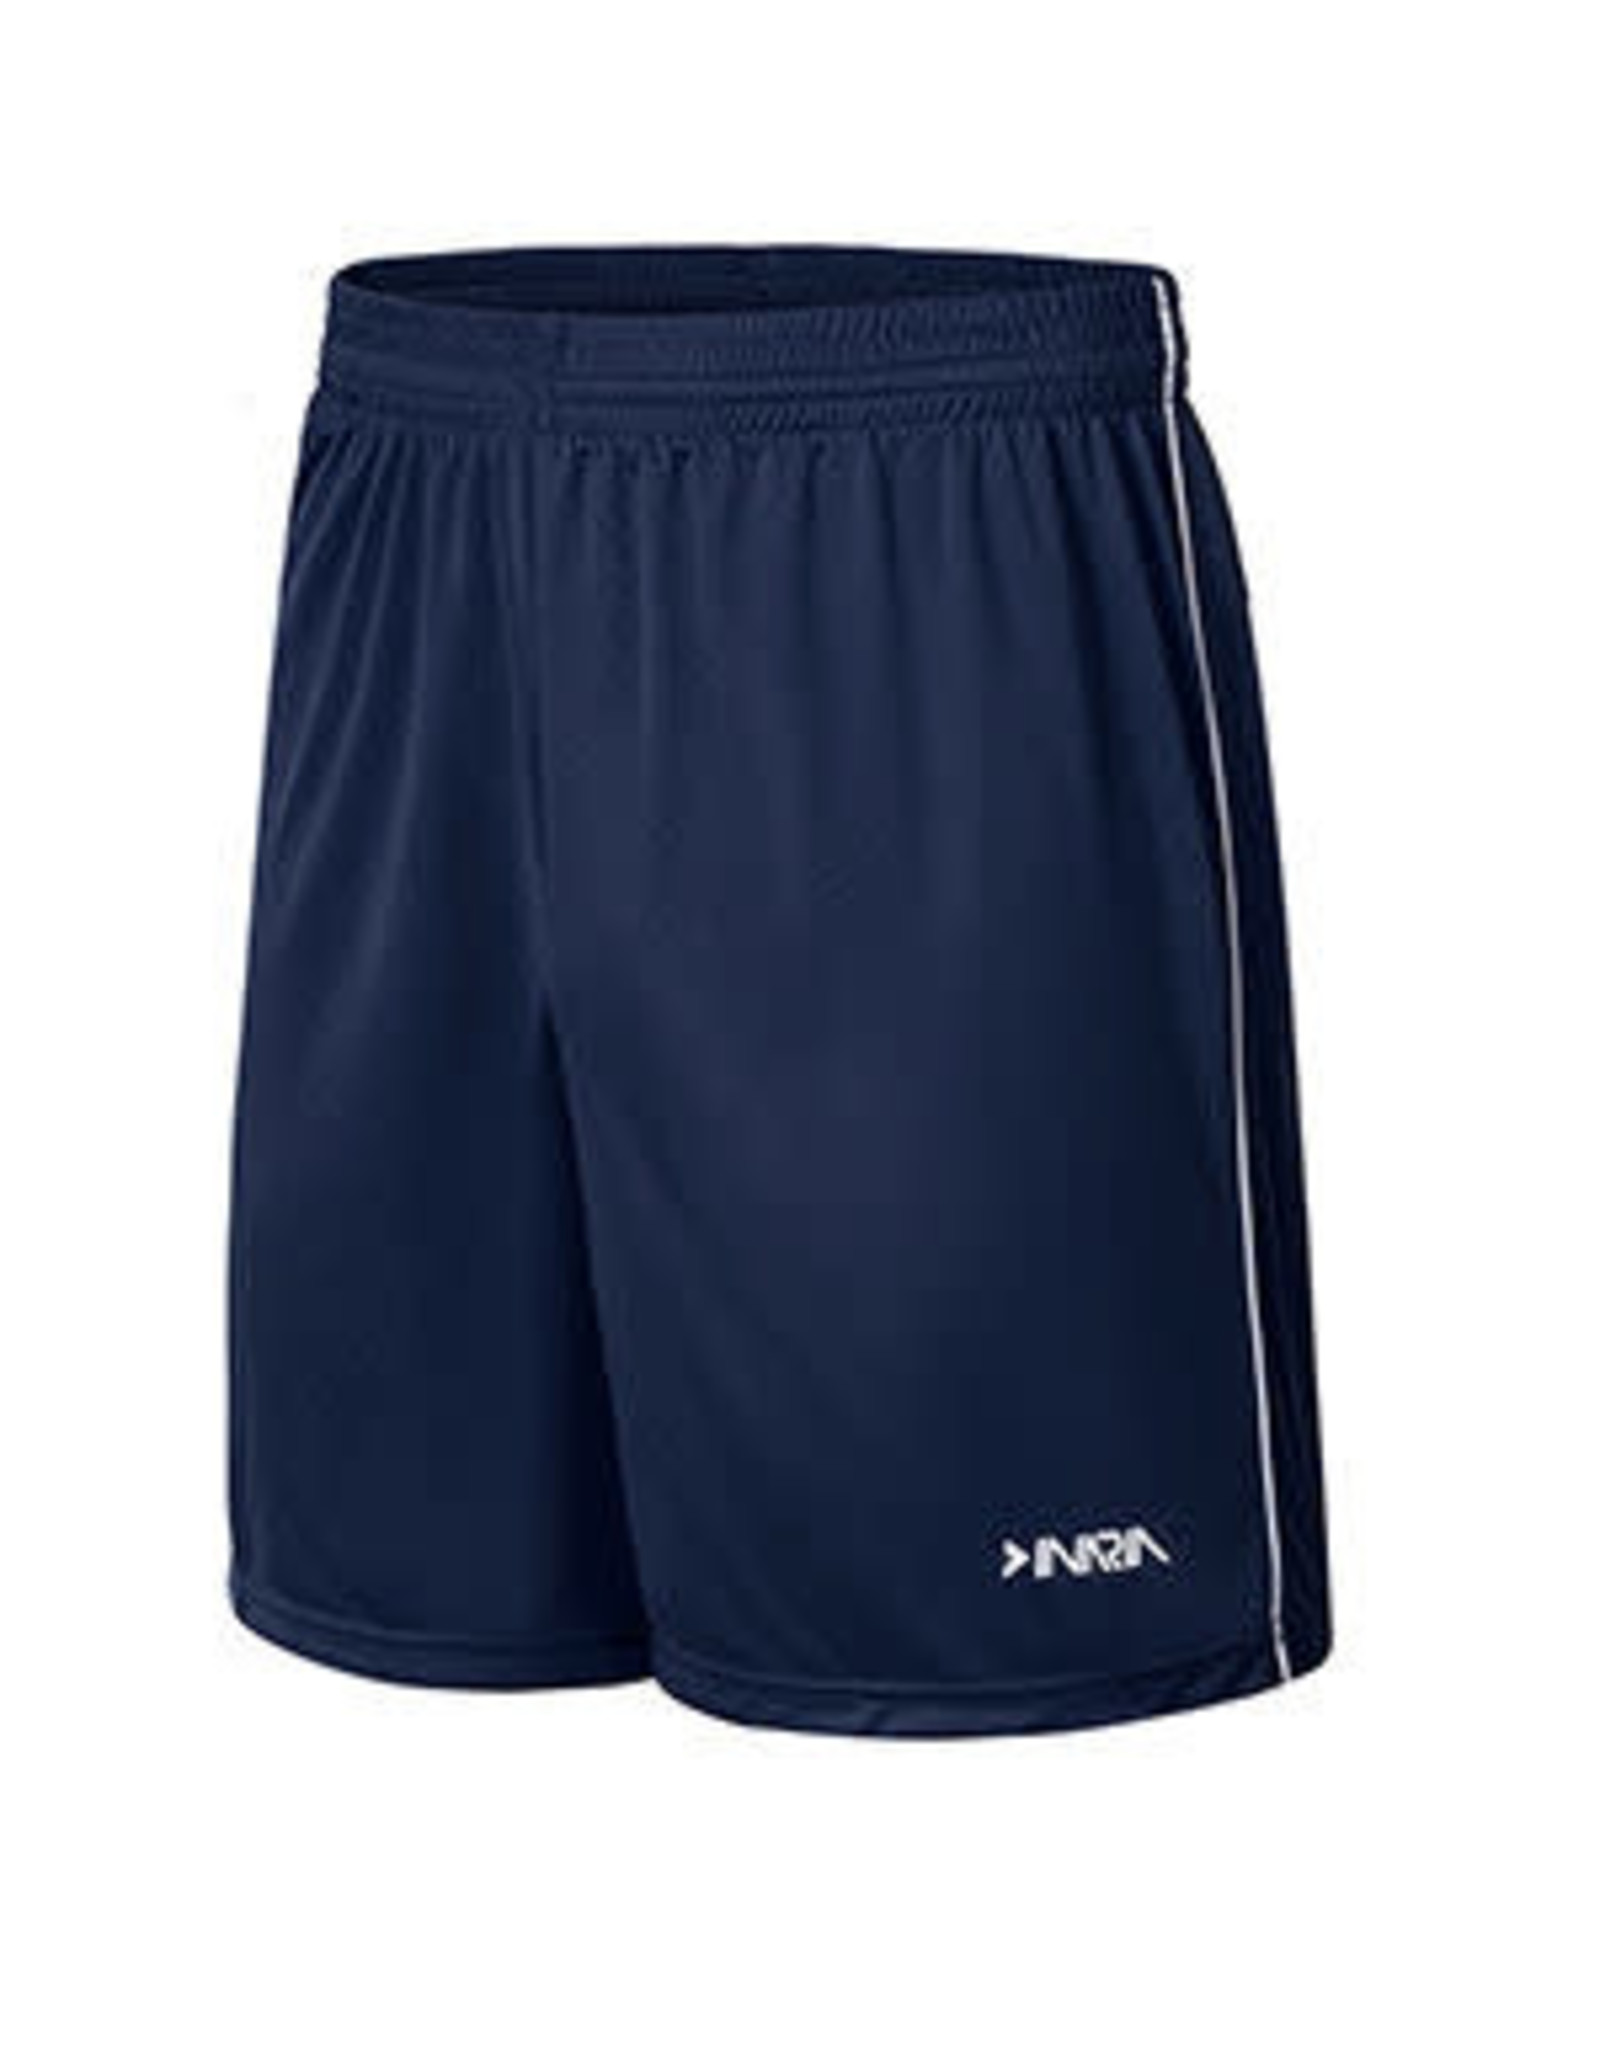 Inaria Inaria Junior Anfield Short (Navy)